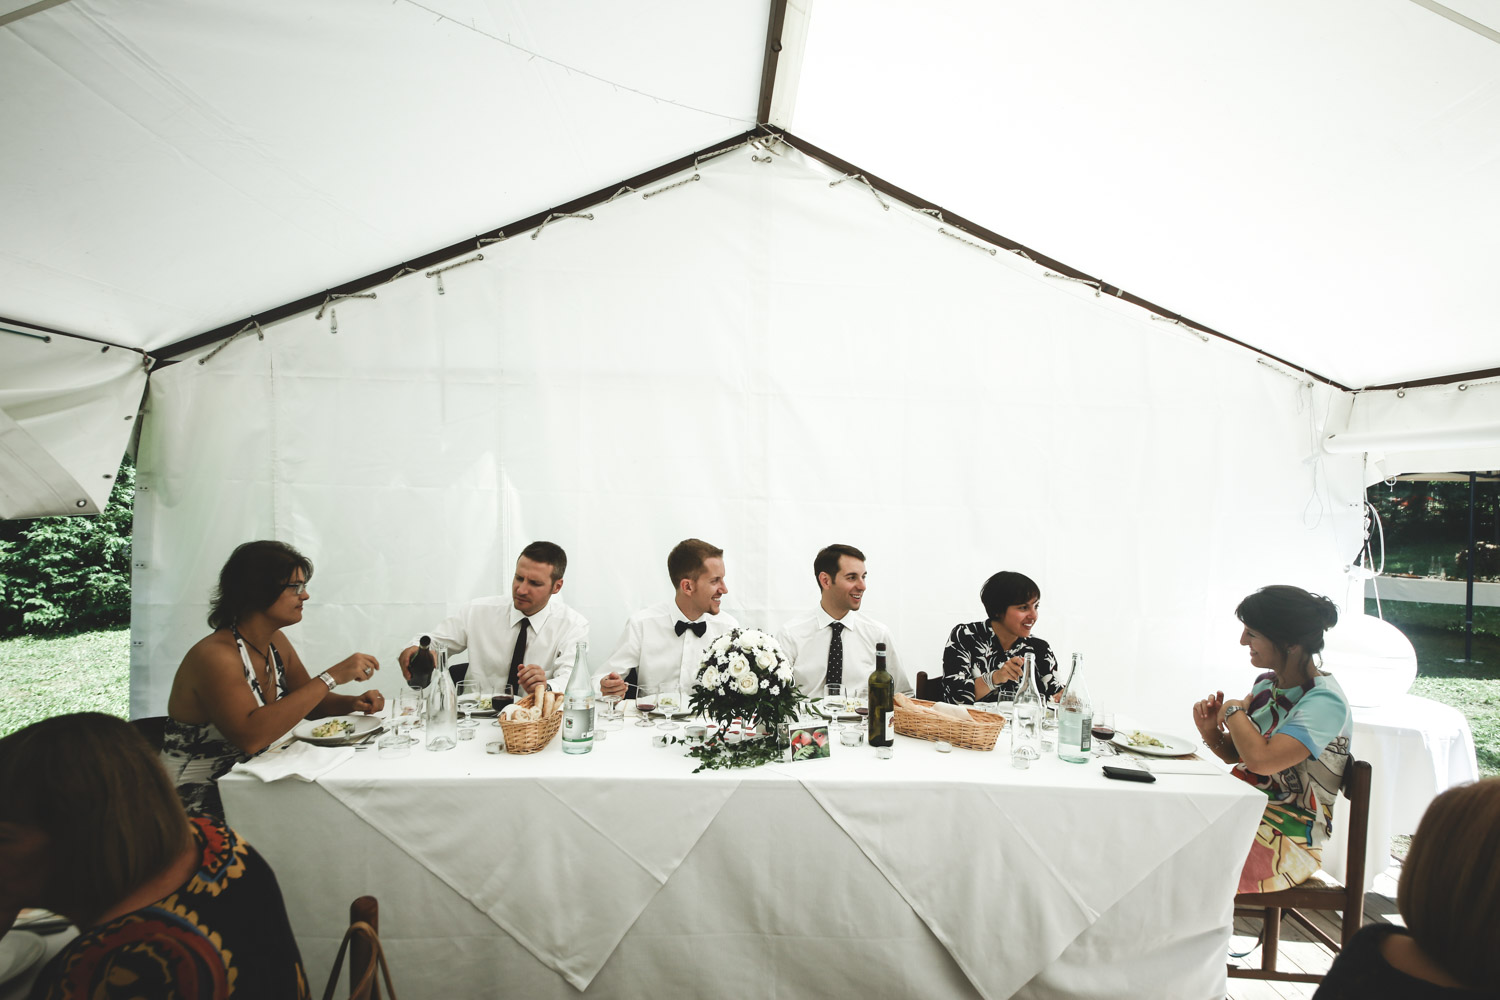 monica-sica_photography_trattoria-revelli_wedding-gay_torino_day_65